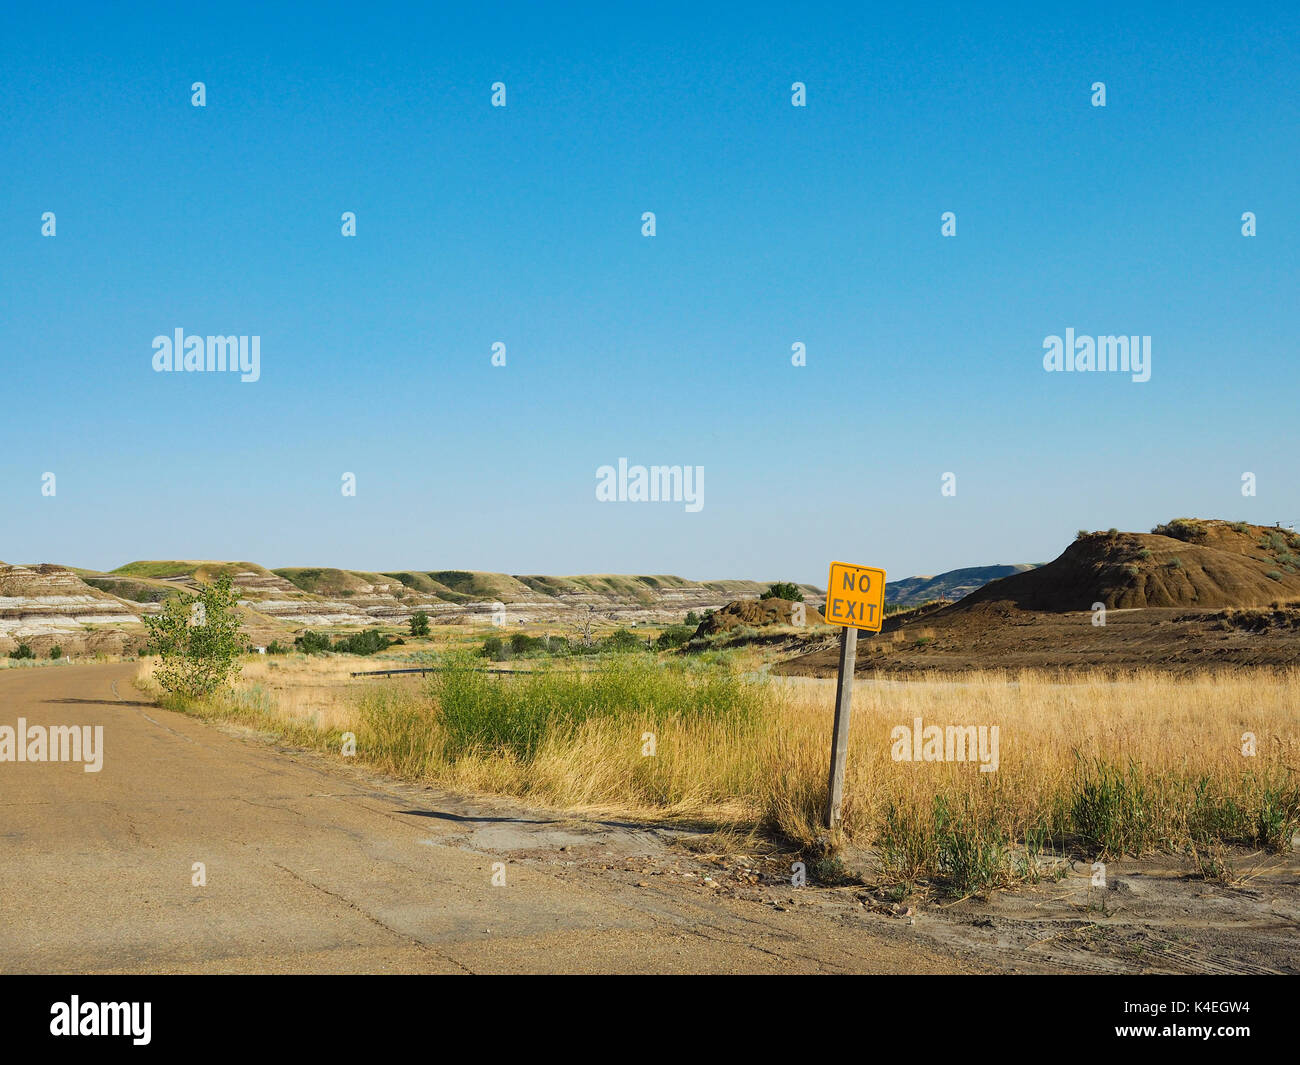 No Exit Sign in Drumheller, Alberta - Stock Image